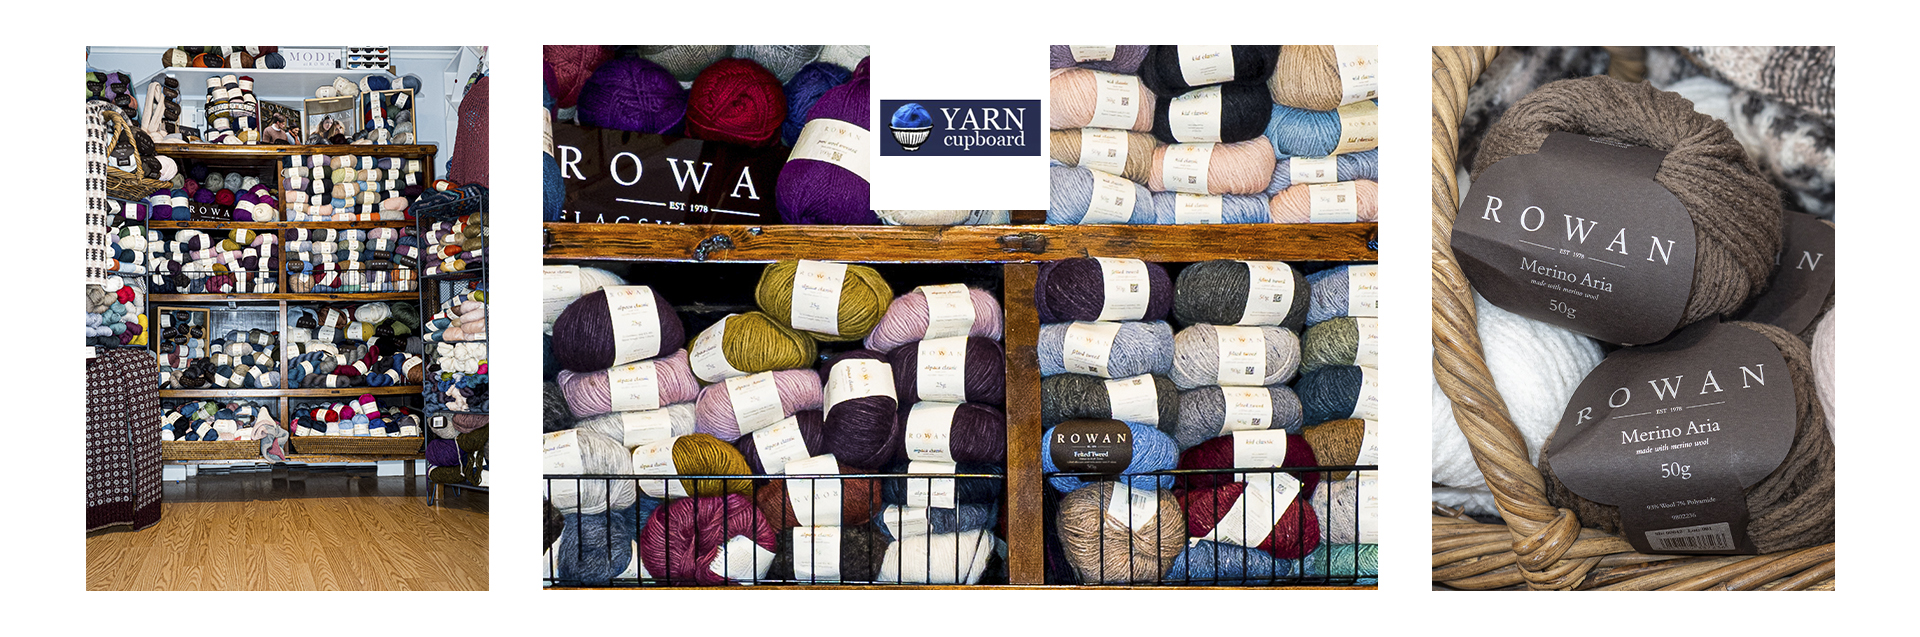 For 12 years the Yarn Cupboard has been a full service yarn shop and is a Rowan Flagship store. We are a premiere source for Rowan yarns in Upstate, New York.